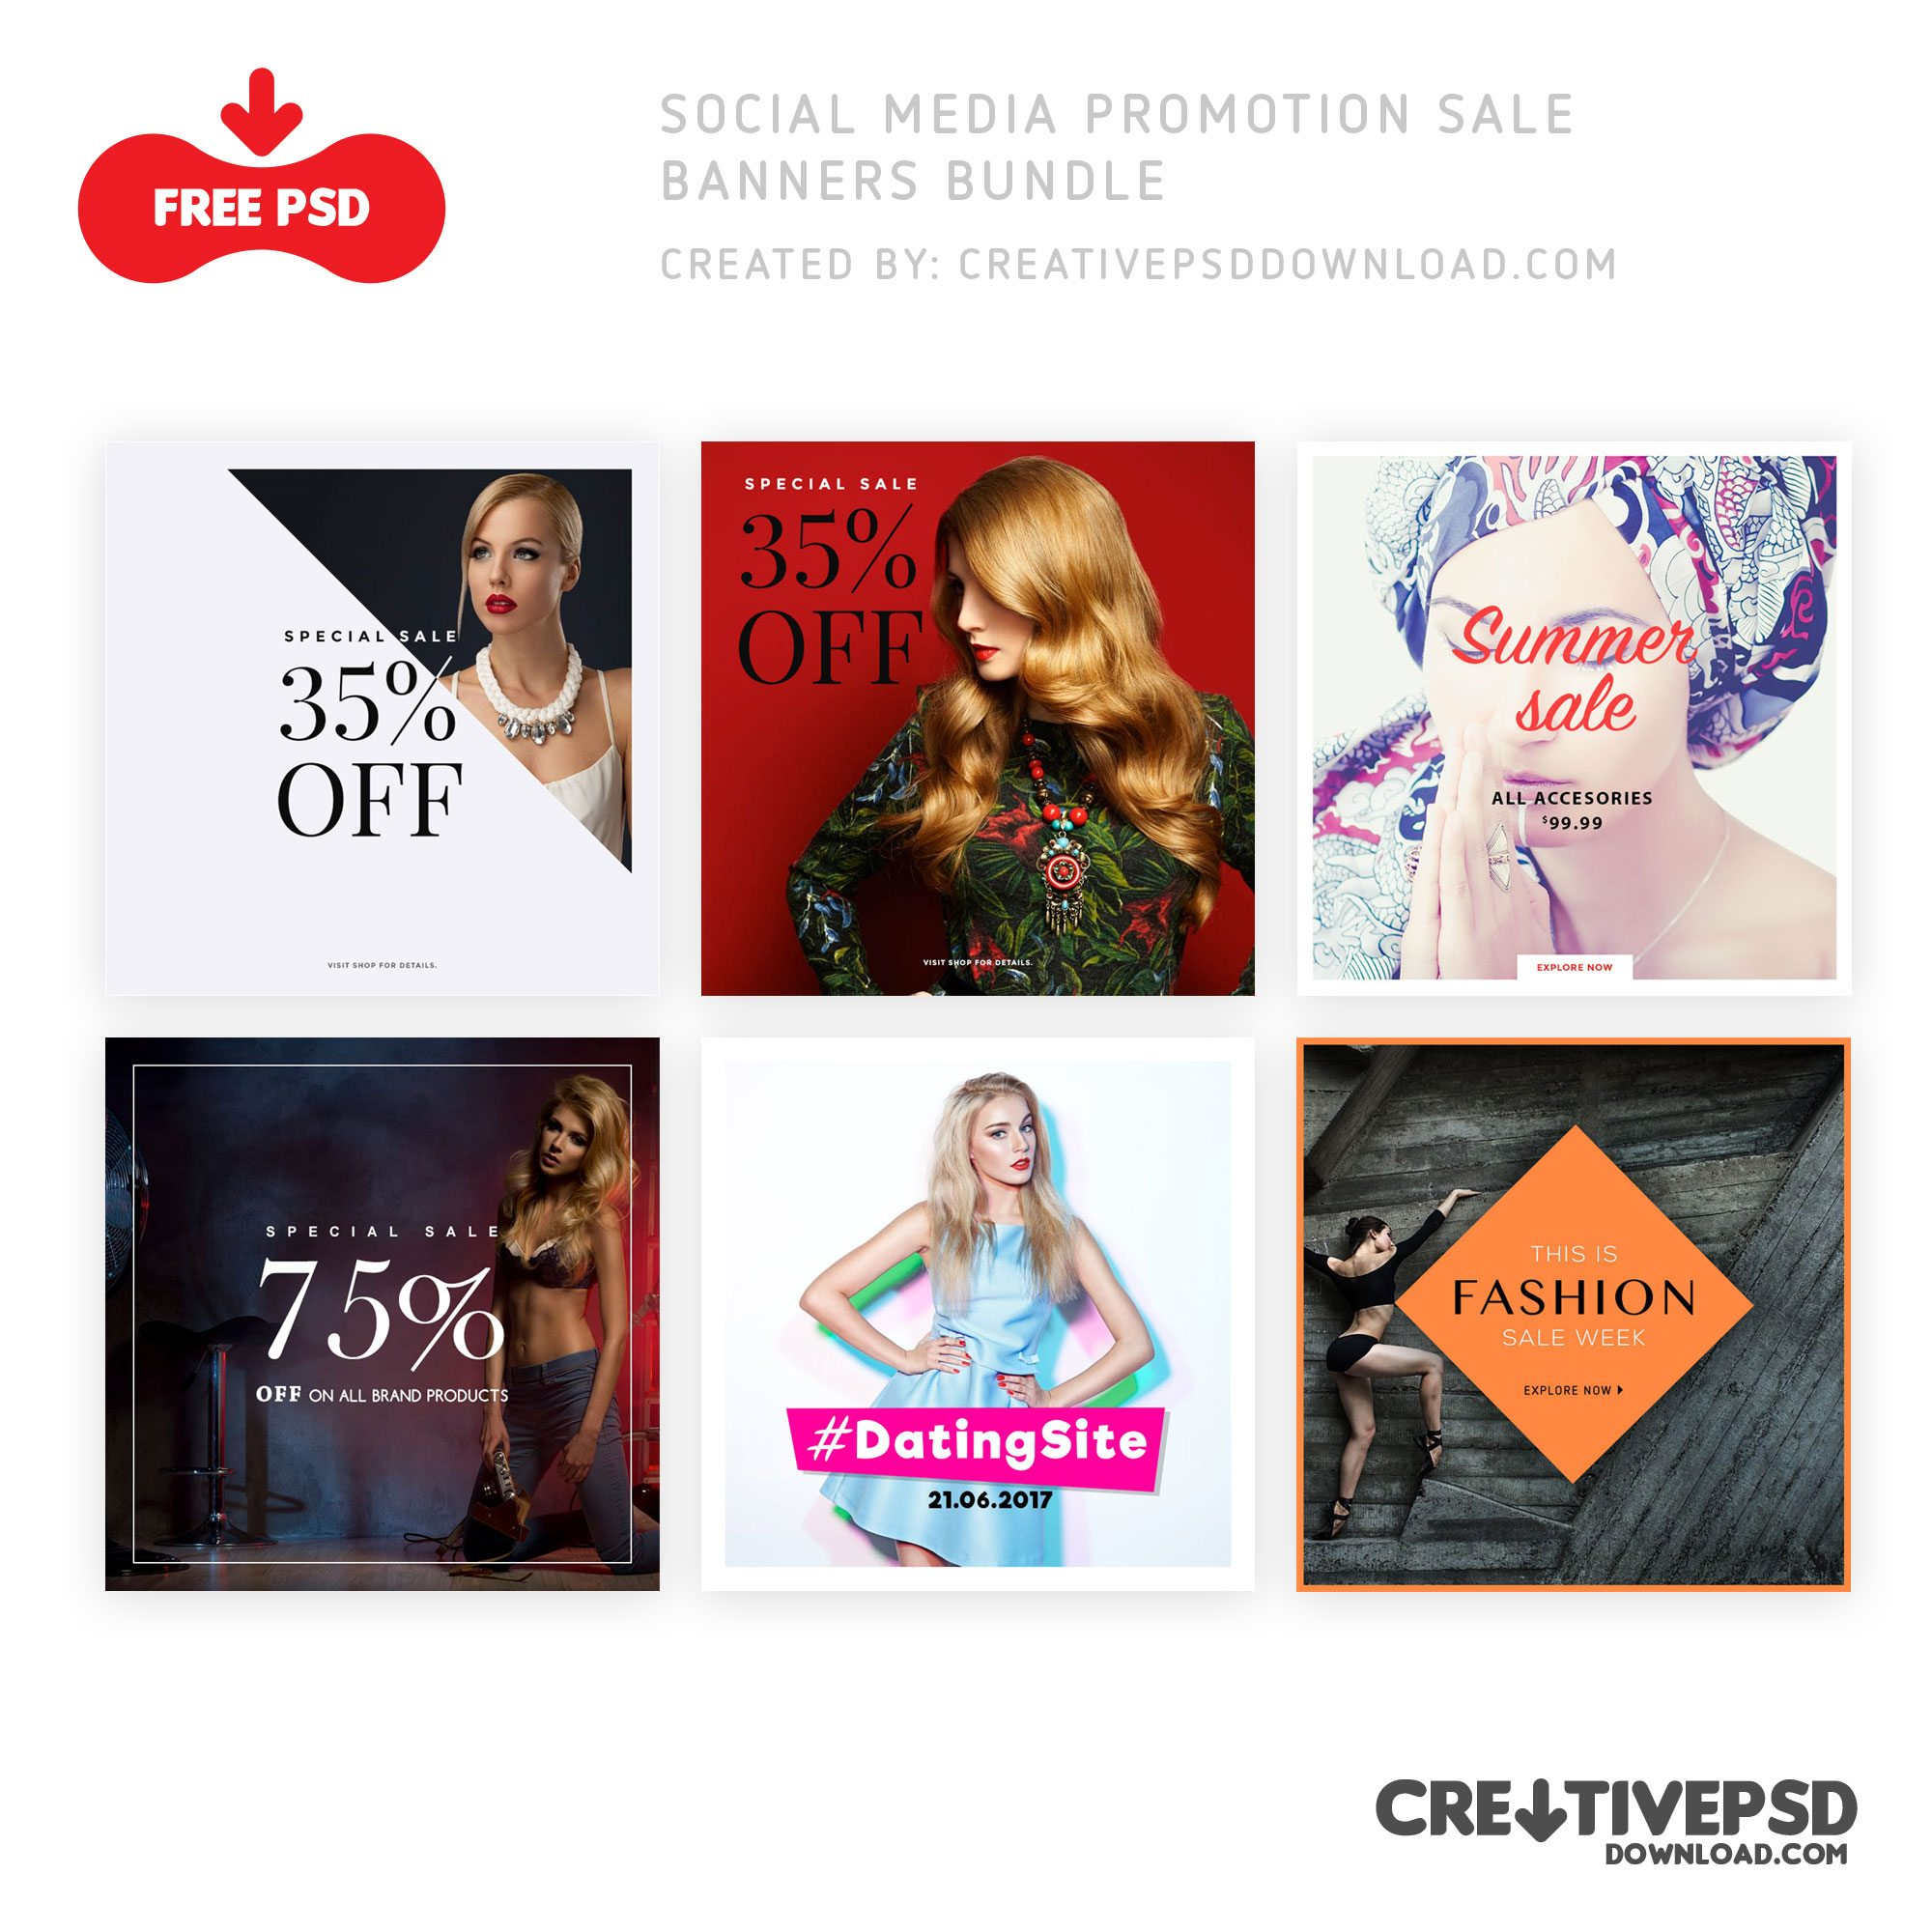 Social Media Promotion Sale Banners Bundle